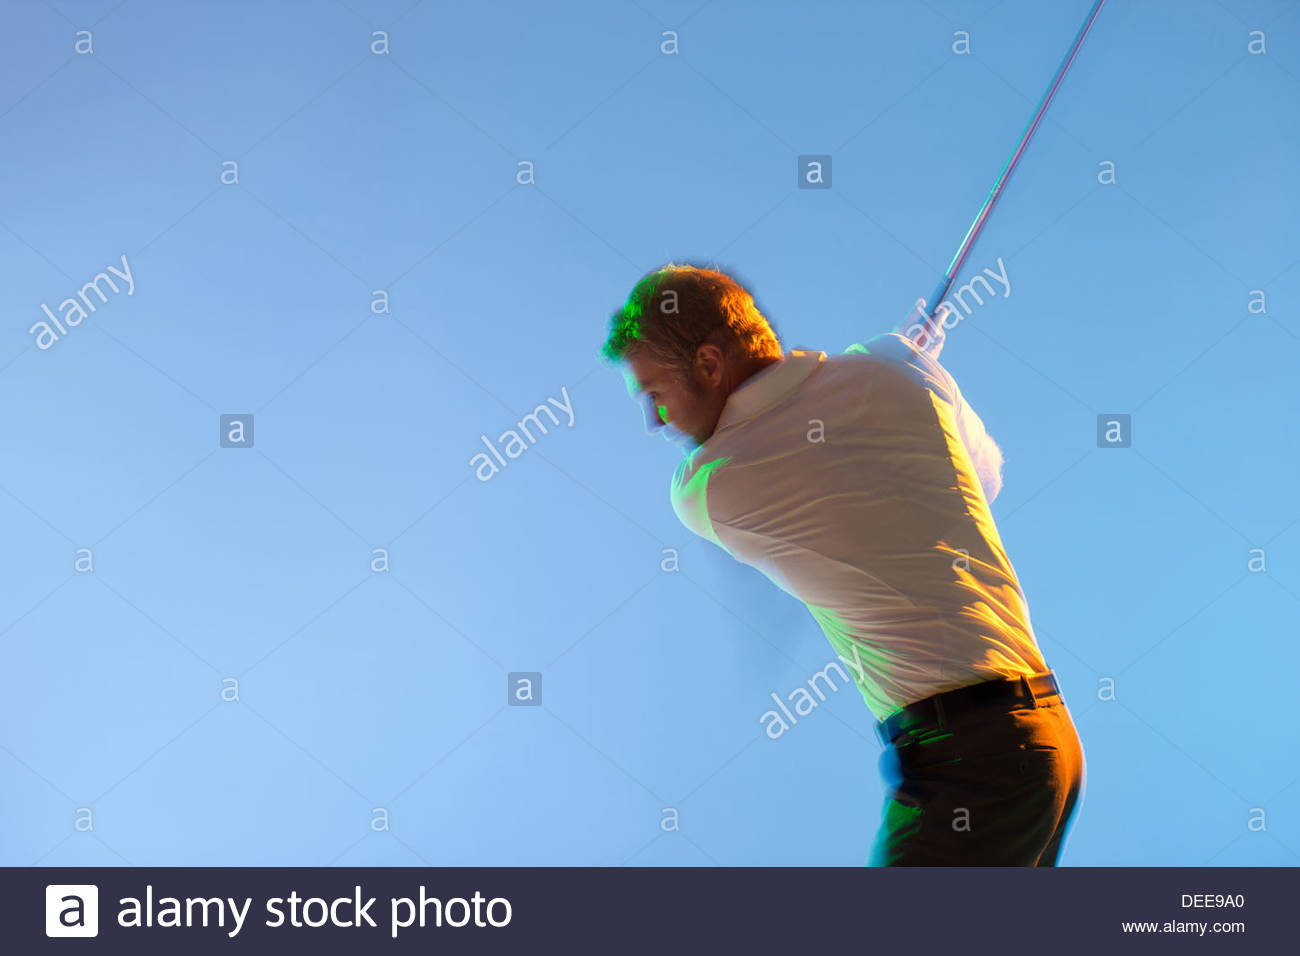 Blurred view of golf player swinging club - Stock Image